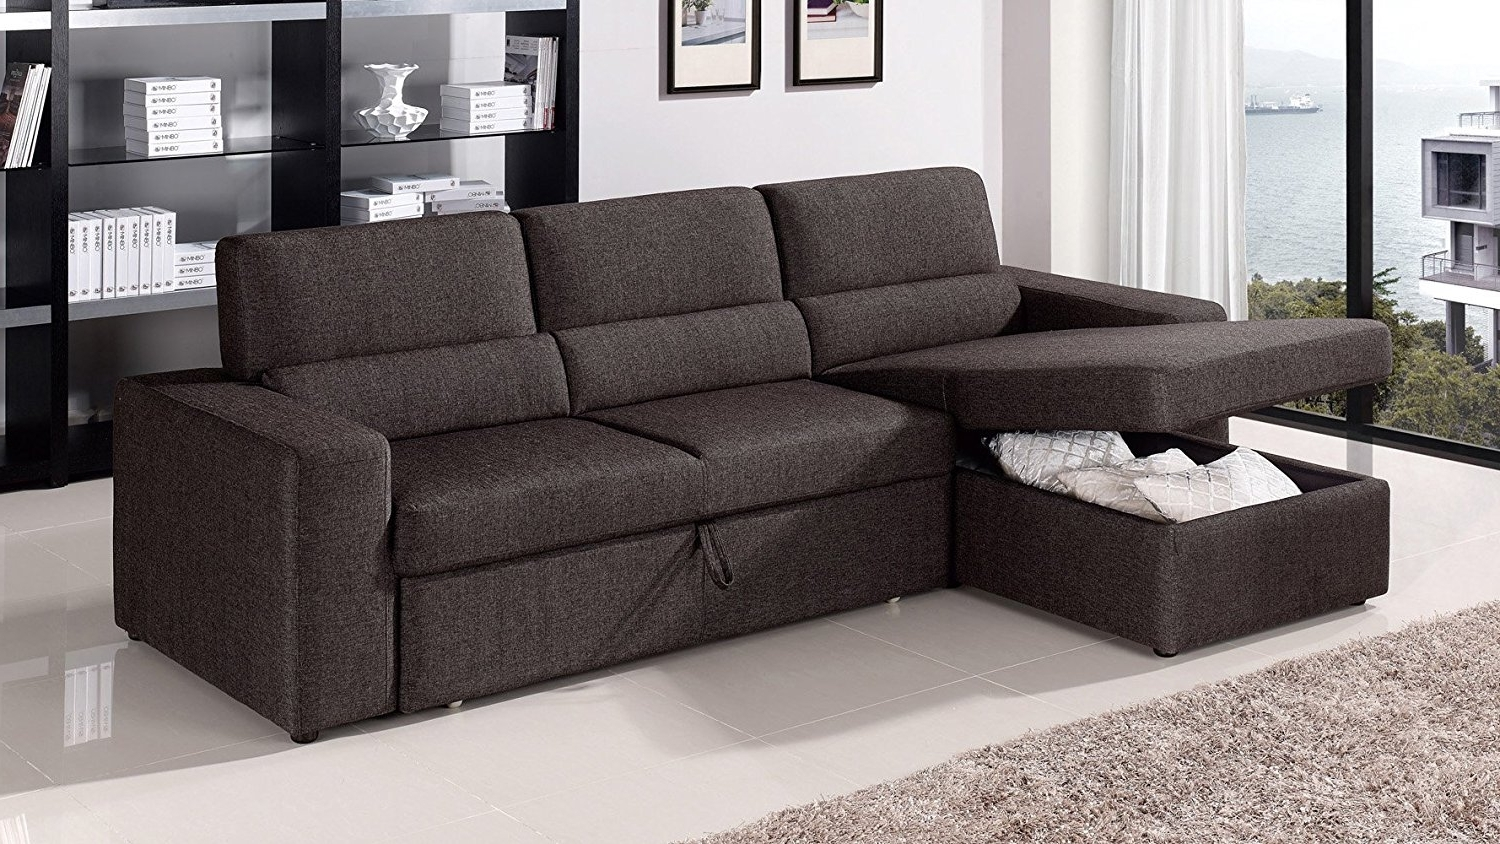 Amazon: Black/brown Clubber Sleeper Sectional Sofa – Left With Widely Used Sofa Chaise Sleepers (View 3 of 15)